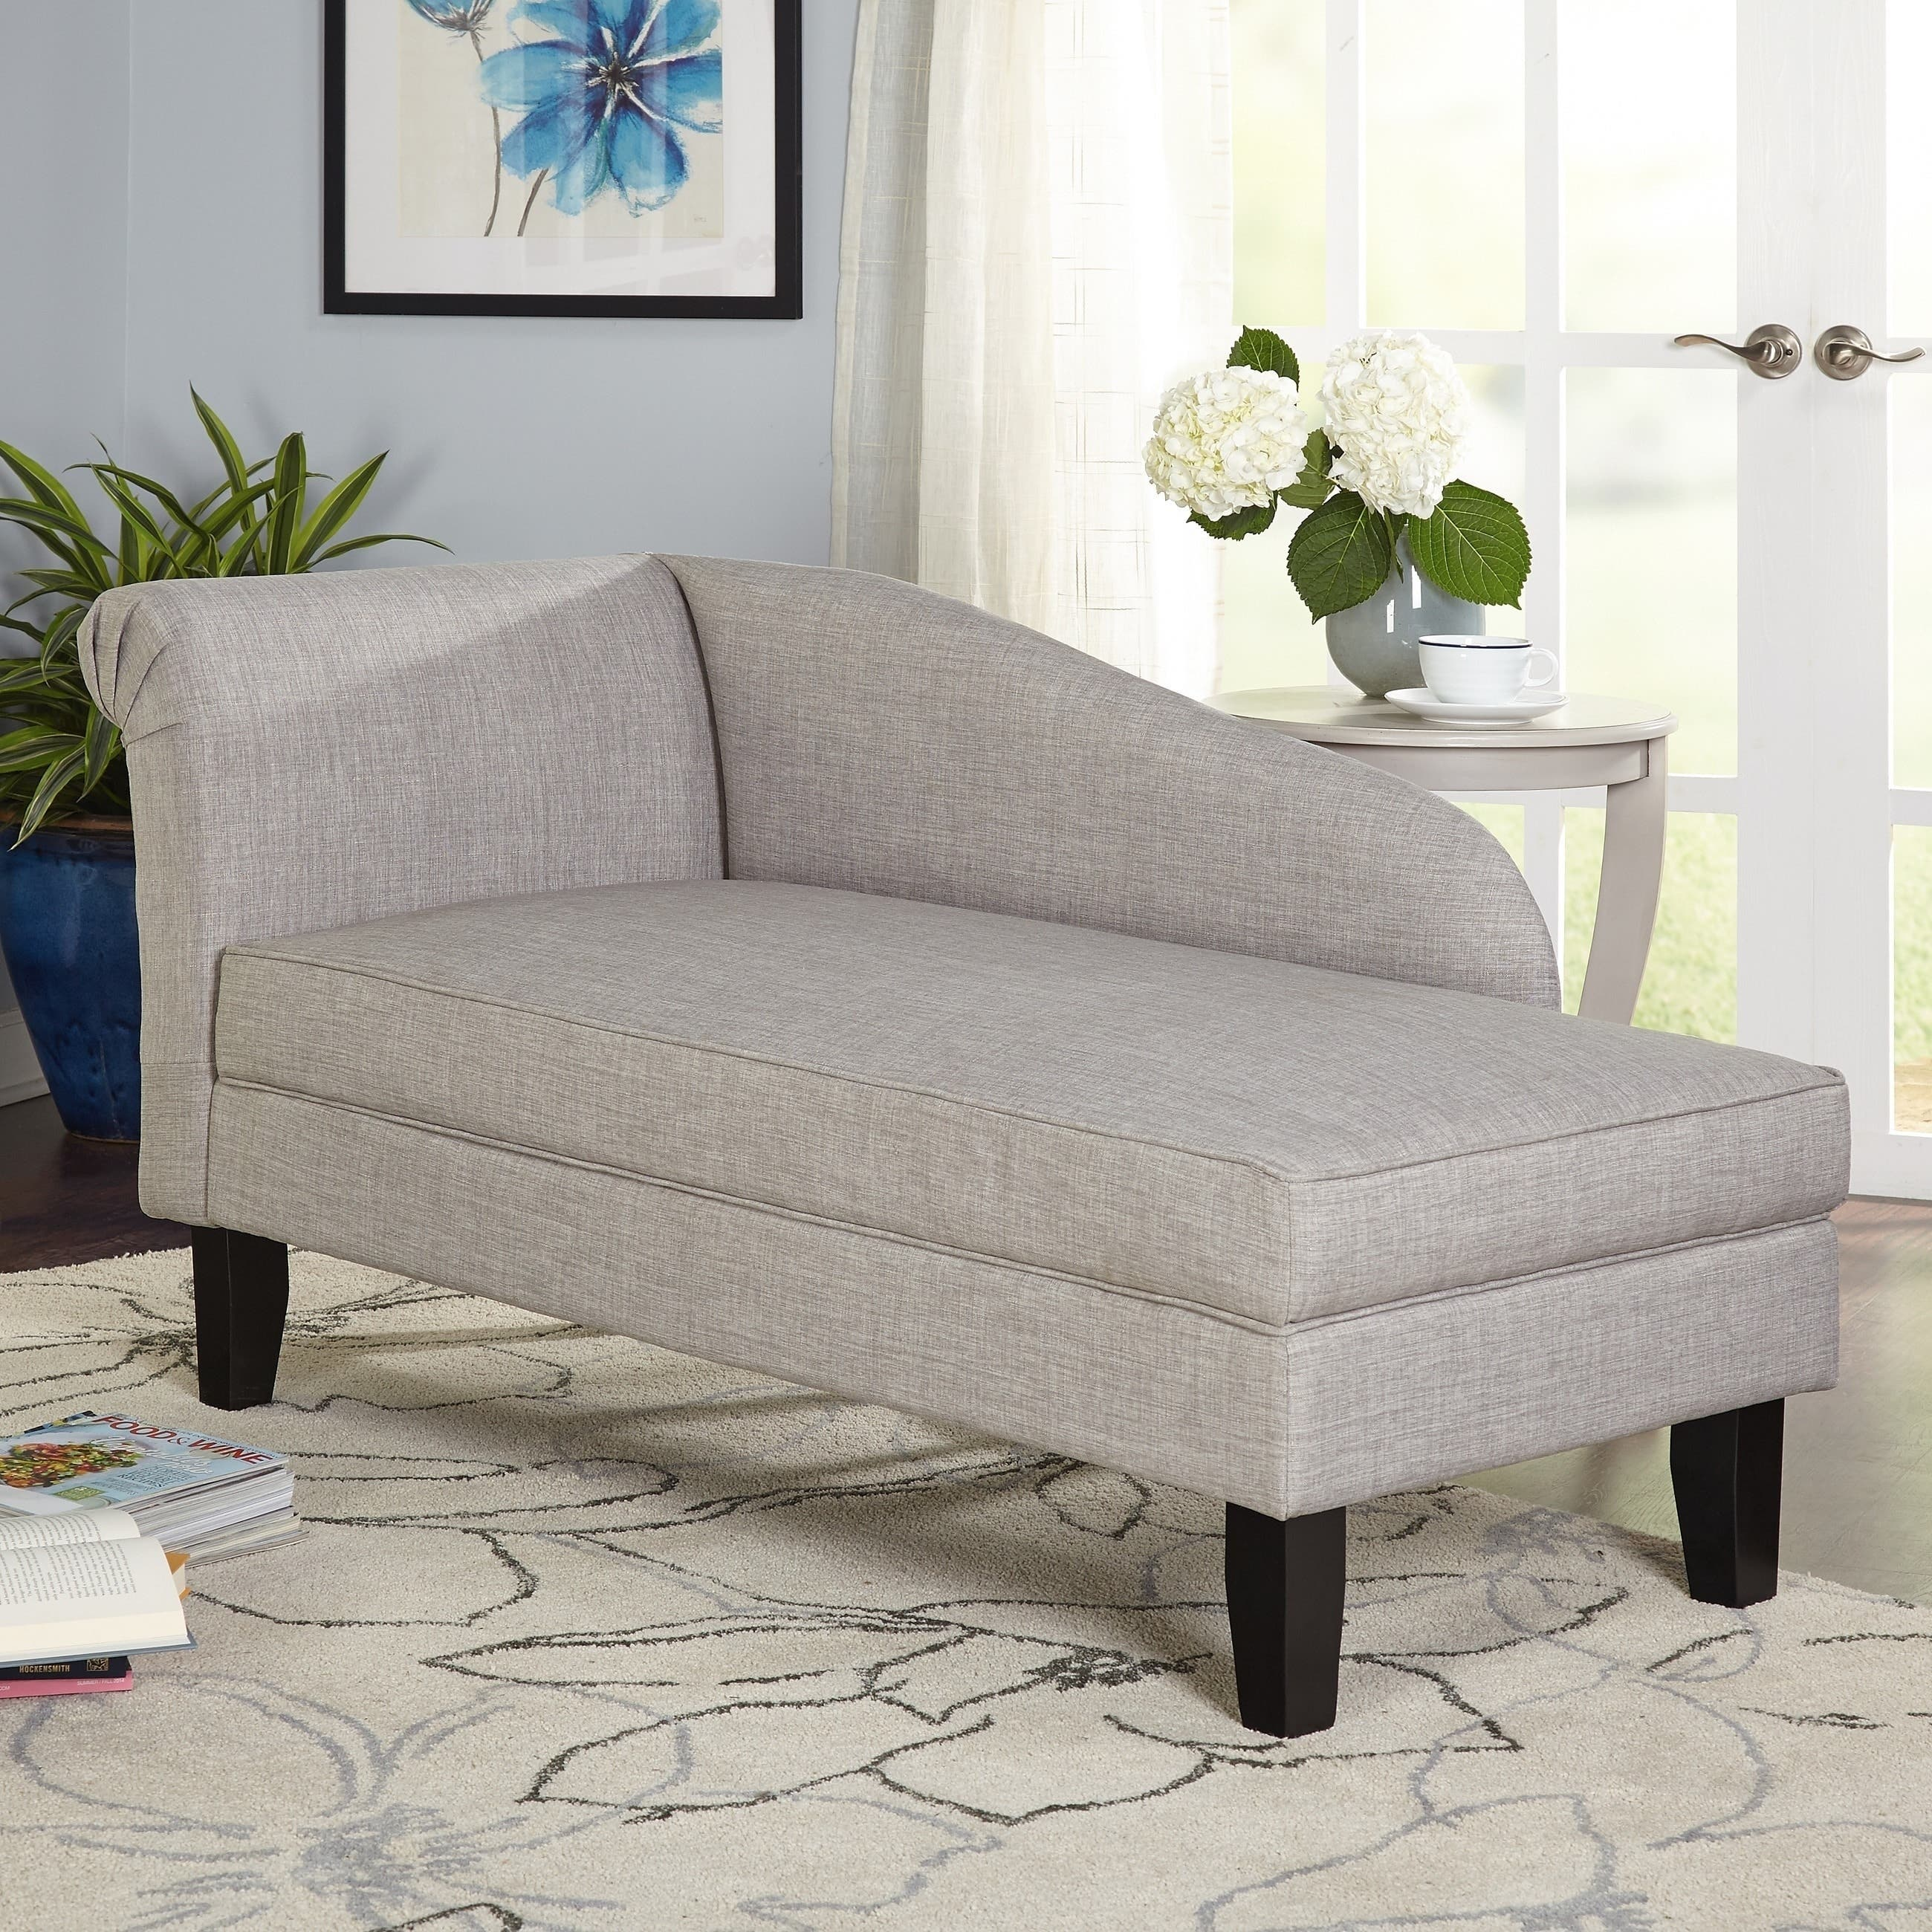 Online Furniture Deals: Buy Benches & Settees Online At Overstock.com